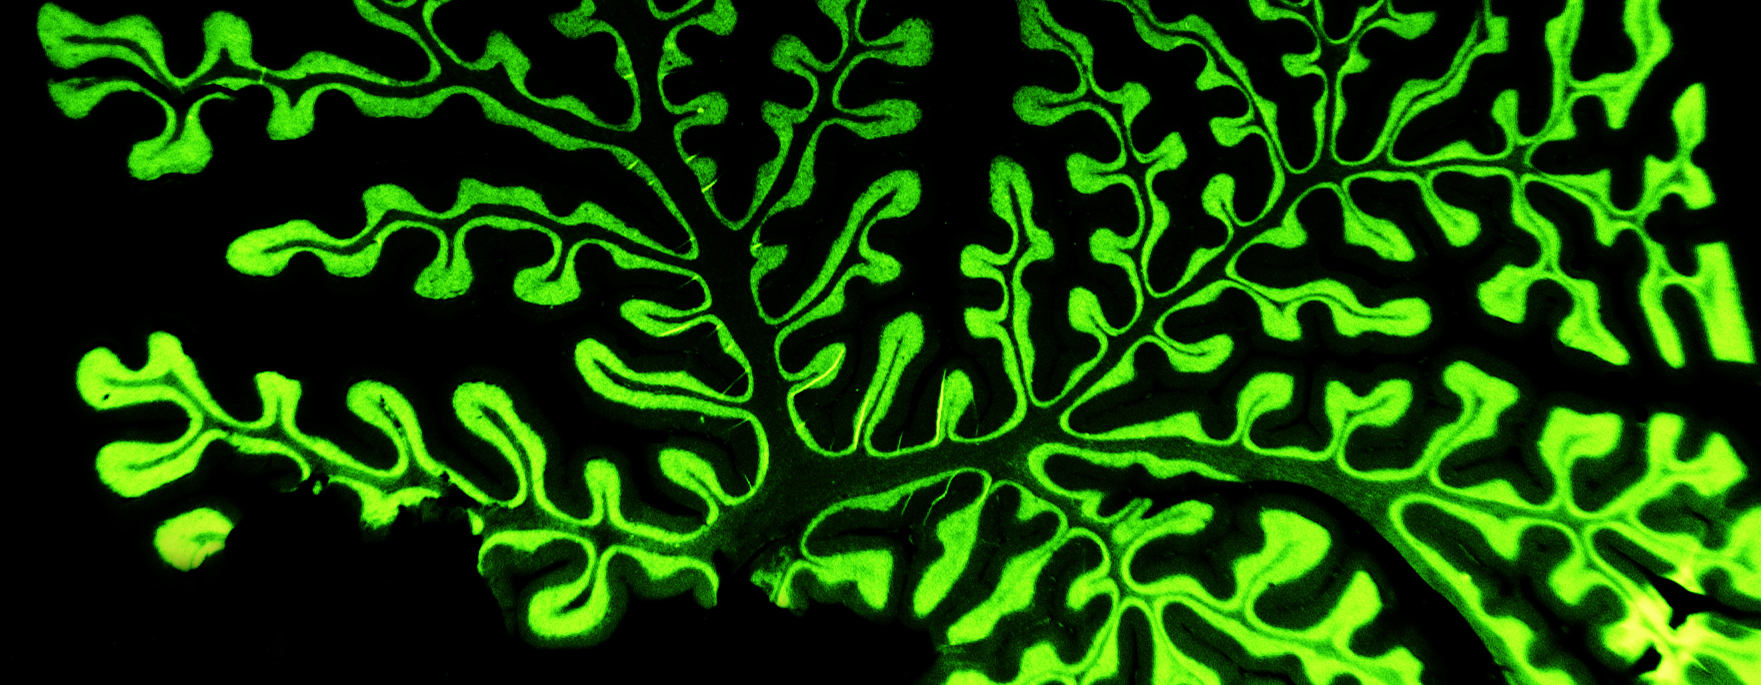 Bright green stain of brain tissue